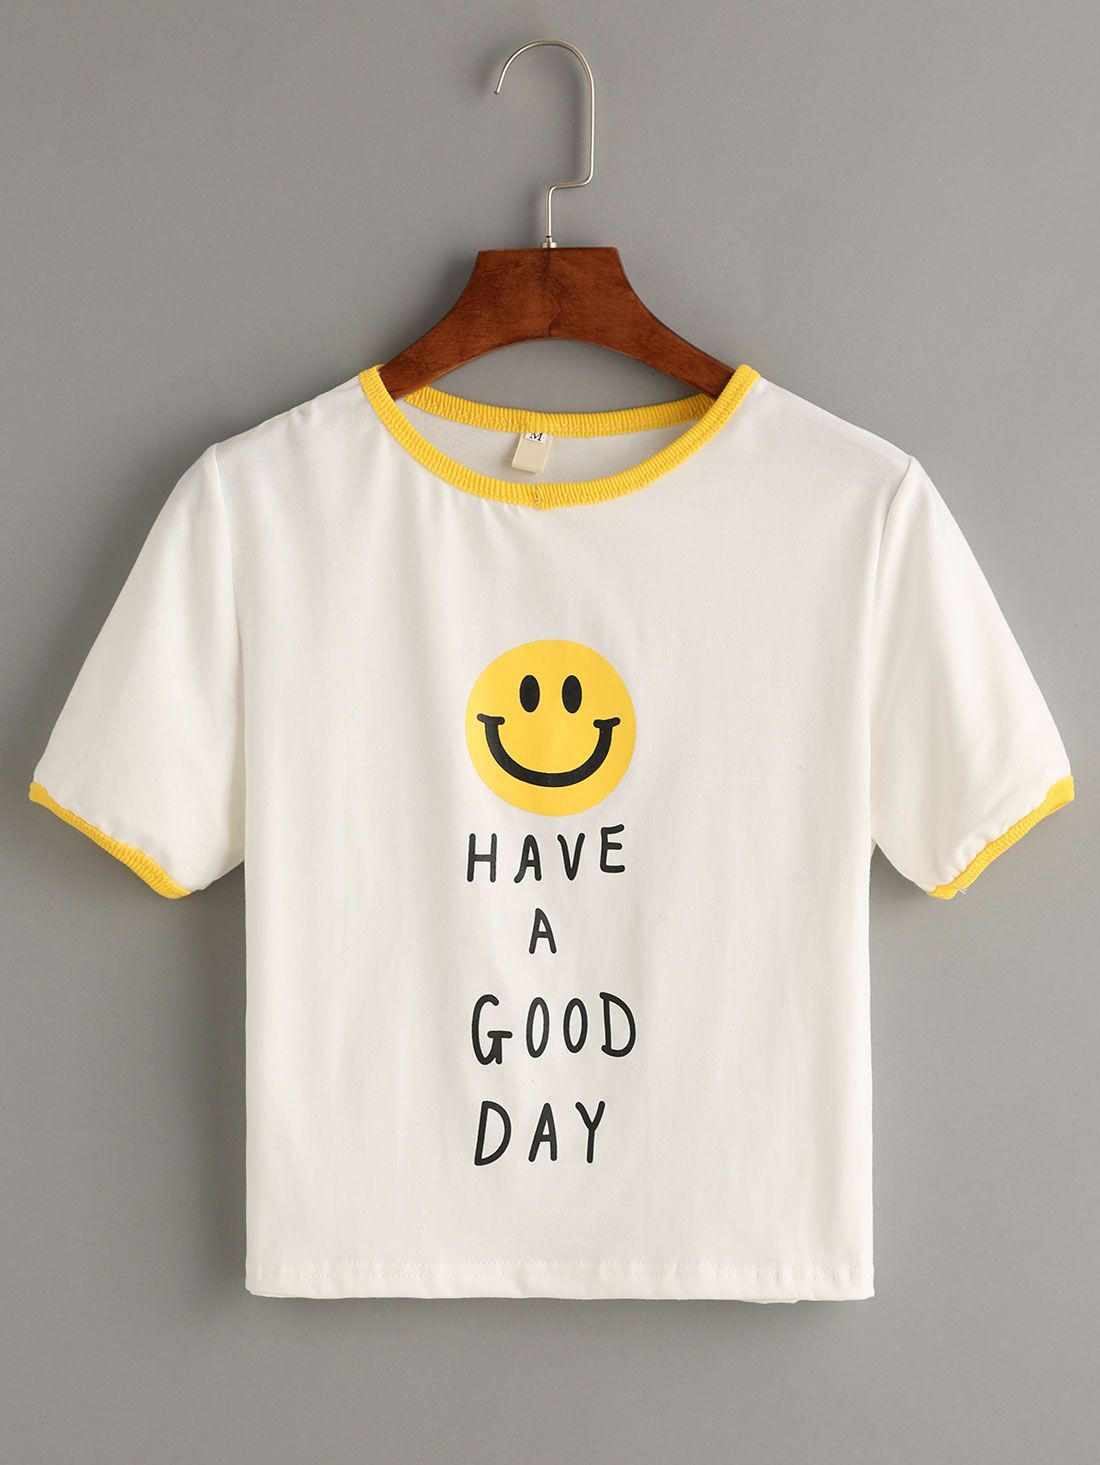 c9b5965fd4 White+Smiley+Face+Print+Contrast+Trim+T-shirt+9.99 | My style ...